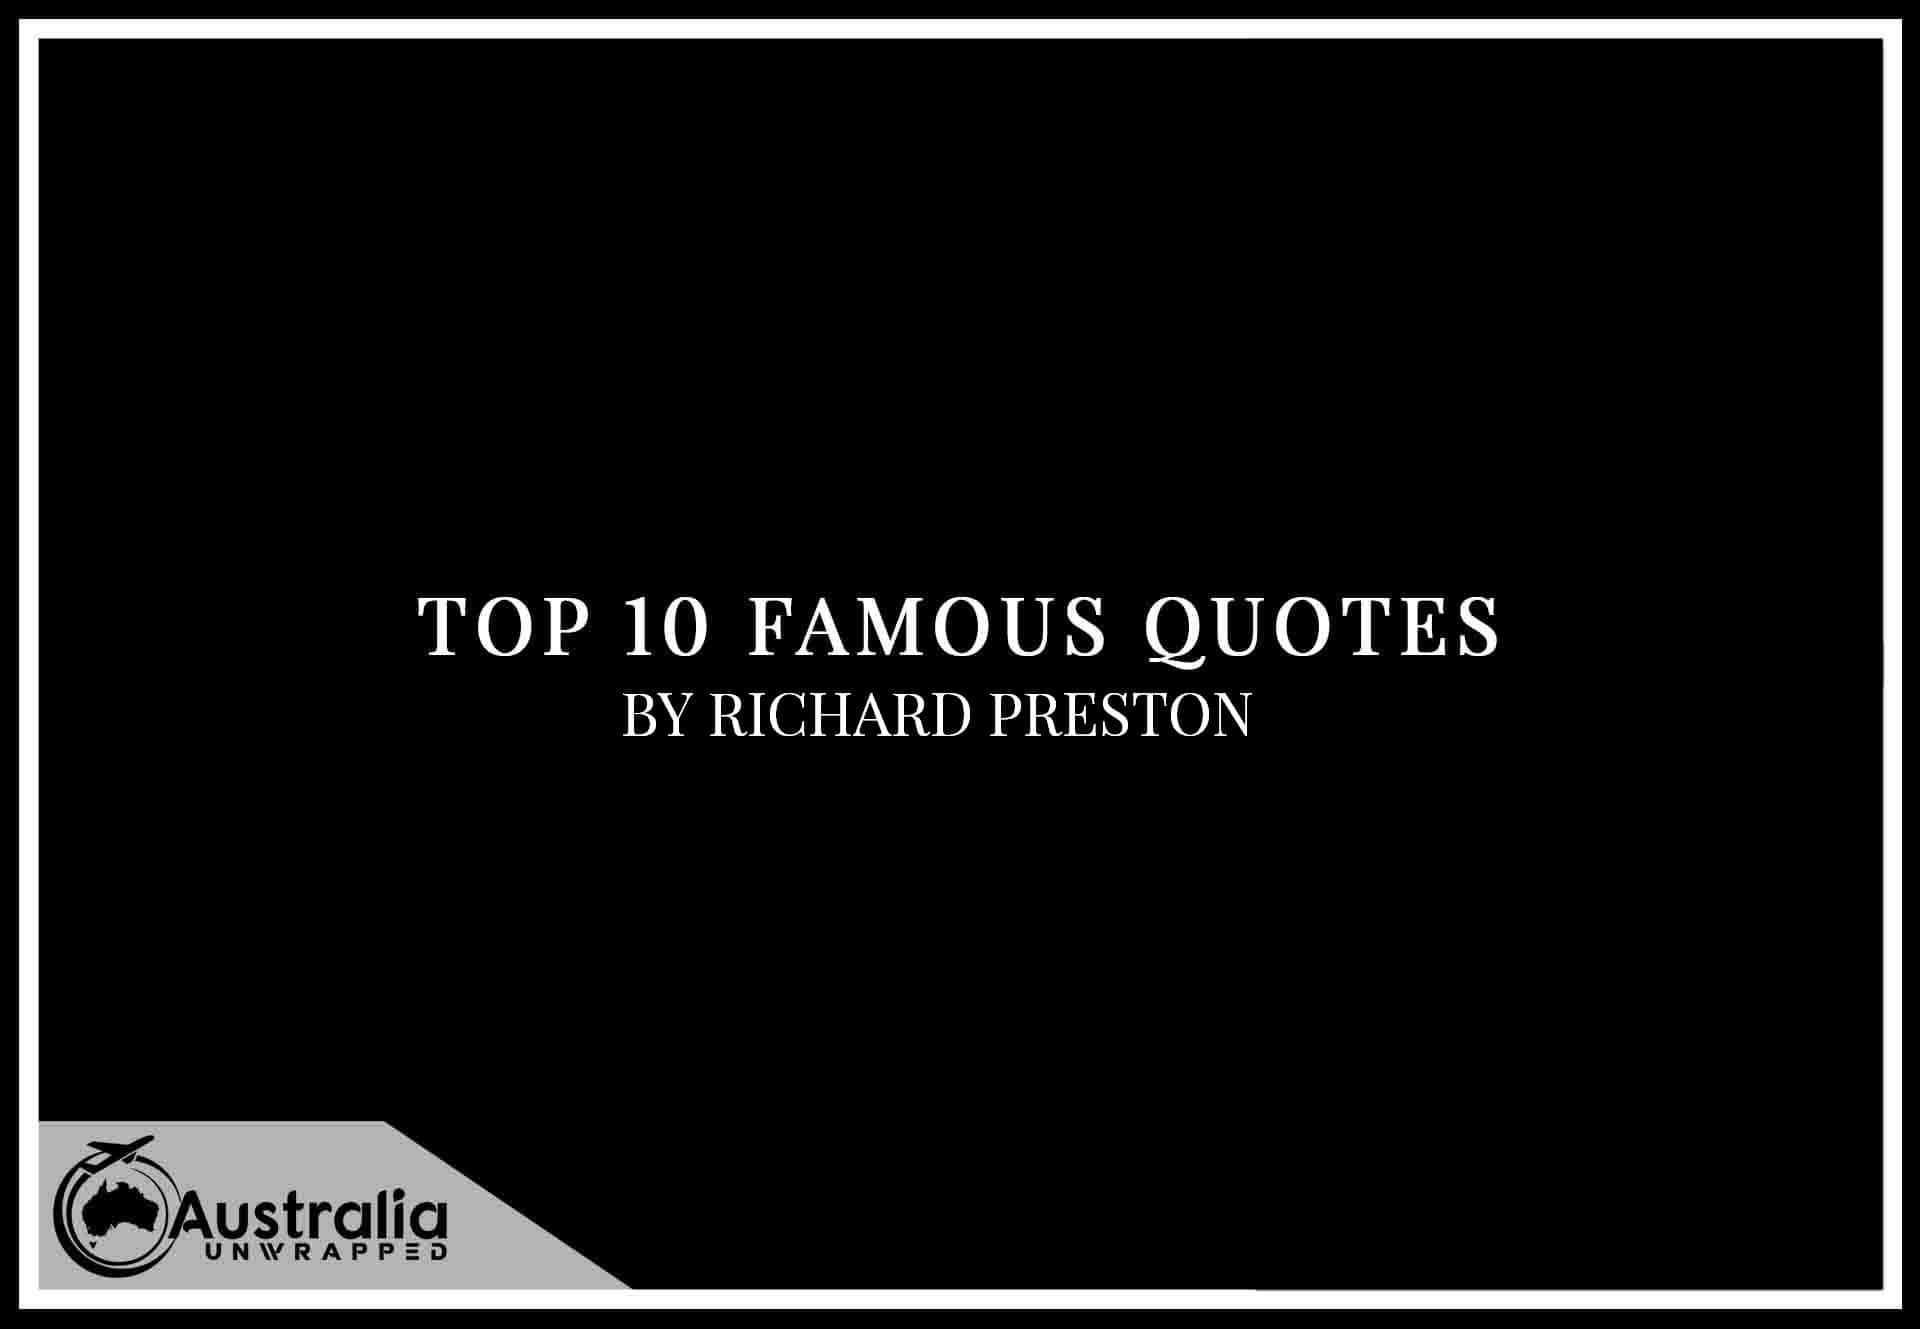 Richard Preston's Top 10 Popular and Famous Quotes